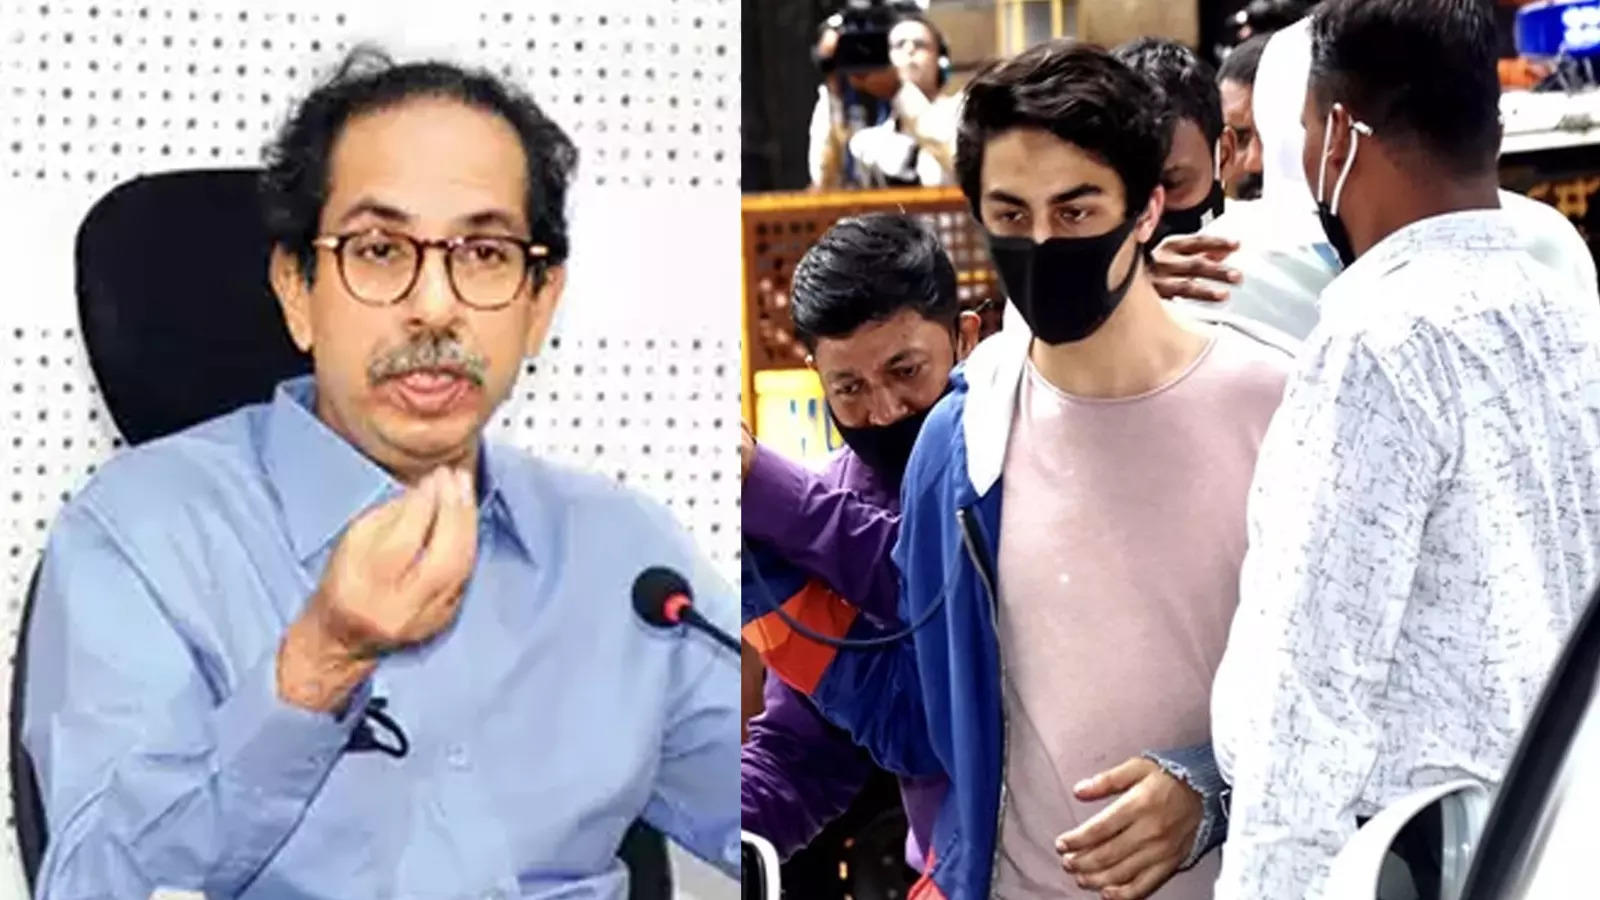 maharashtra-cm-uddhav-thackeray-says-they-are-interested-to-catch-celebrity-and-make-noise-around-it-as-he-opens-up-on-ncbs-recent-raids